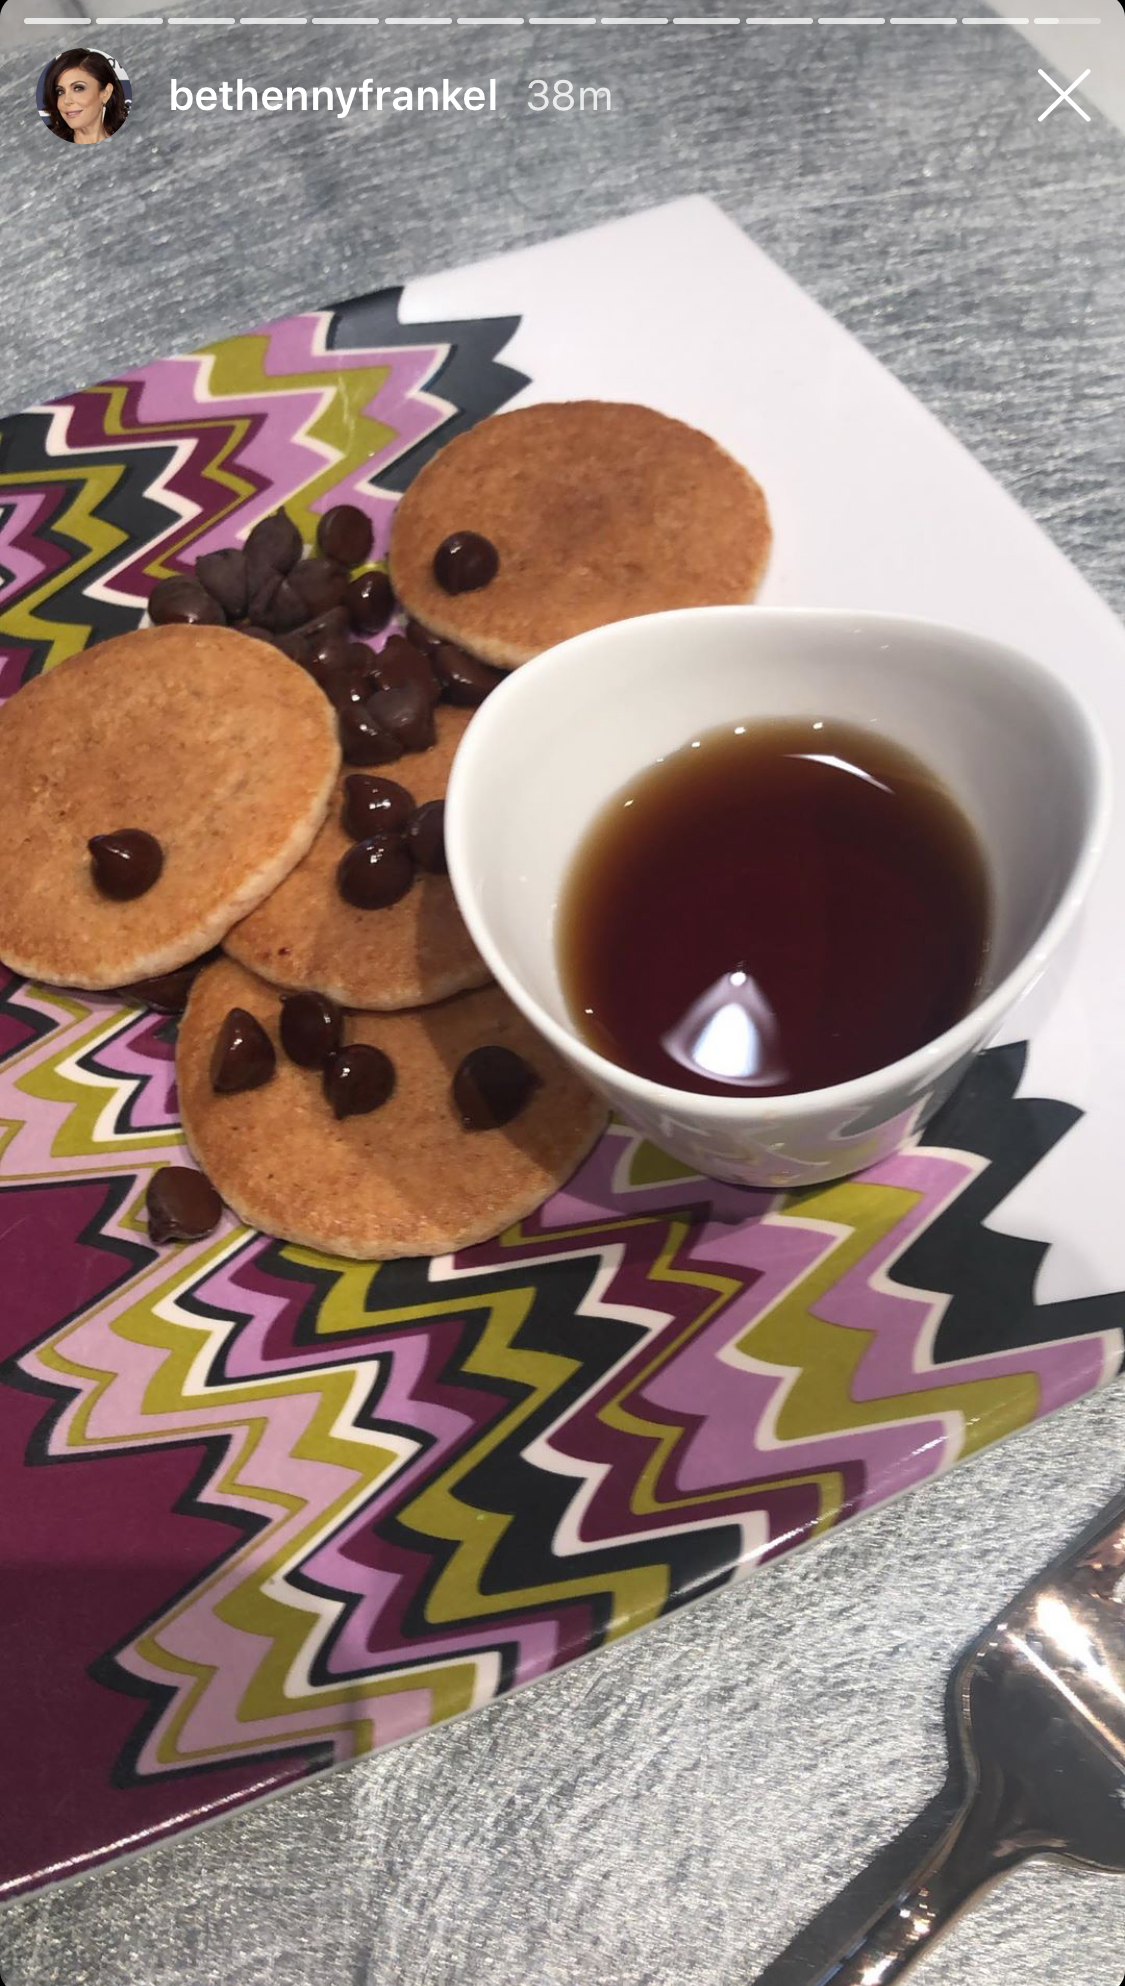 "Mothers' Day Meals - The Real Housewives of New York City star was treated to breakfast on Mother's Day, likely courtesy of her 9-year-old daughter, Bryn Hoppy. According to the Skinnygirl founder's Instagram Stories, her little ""peanut"" prepared a plate of silver dollar pancakes with syrup and chocolate chips."